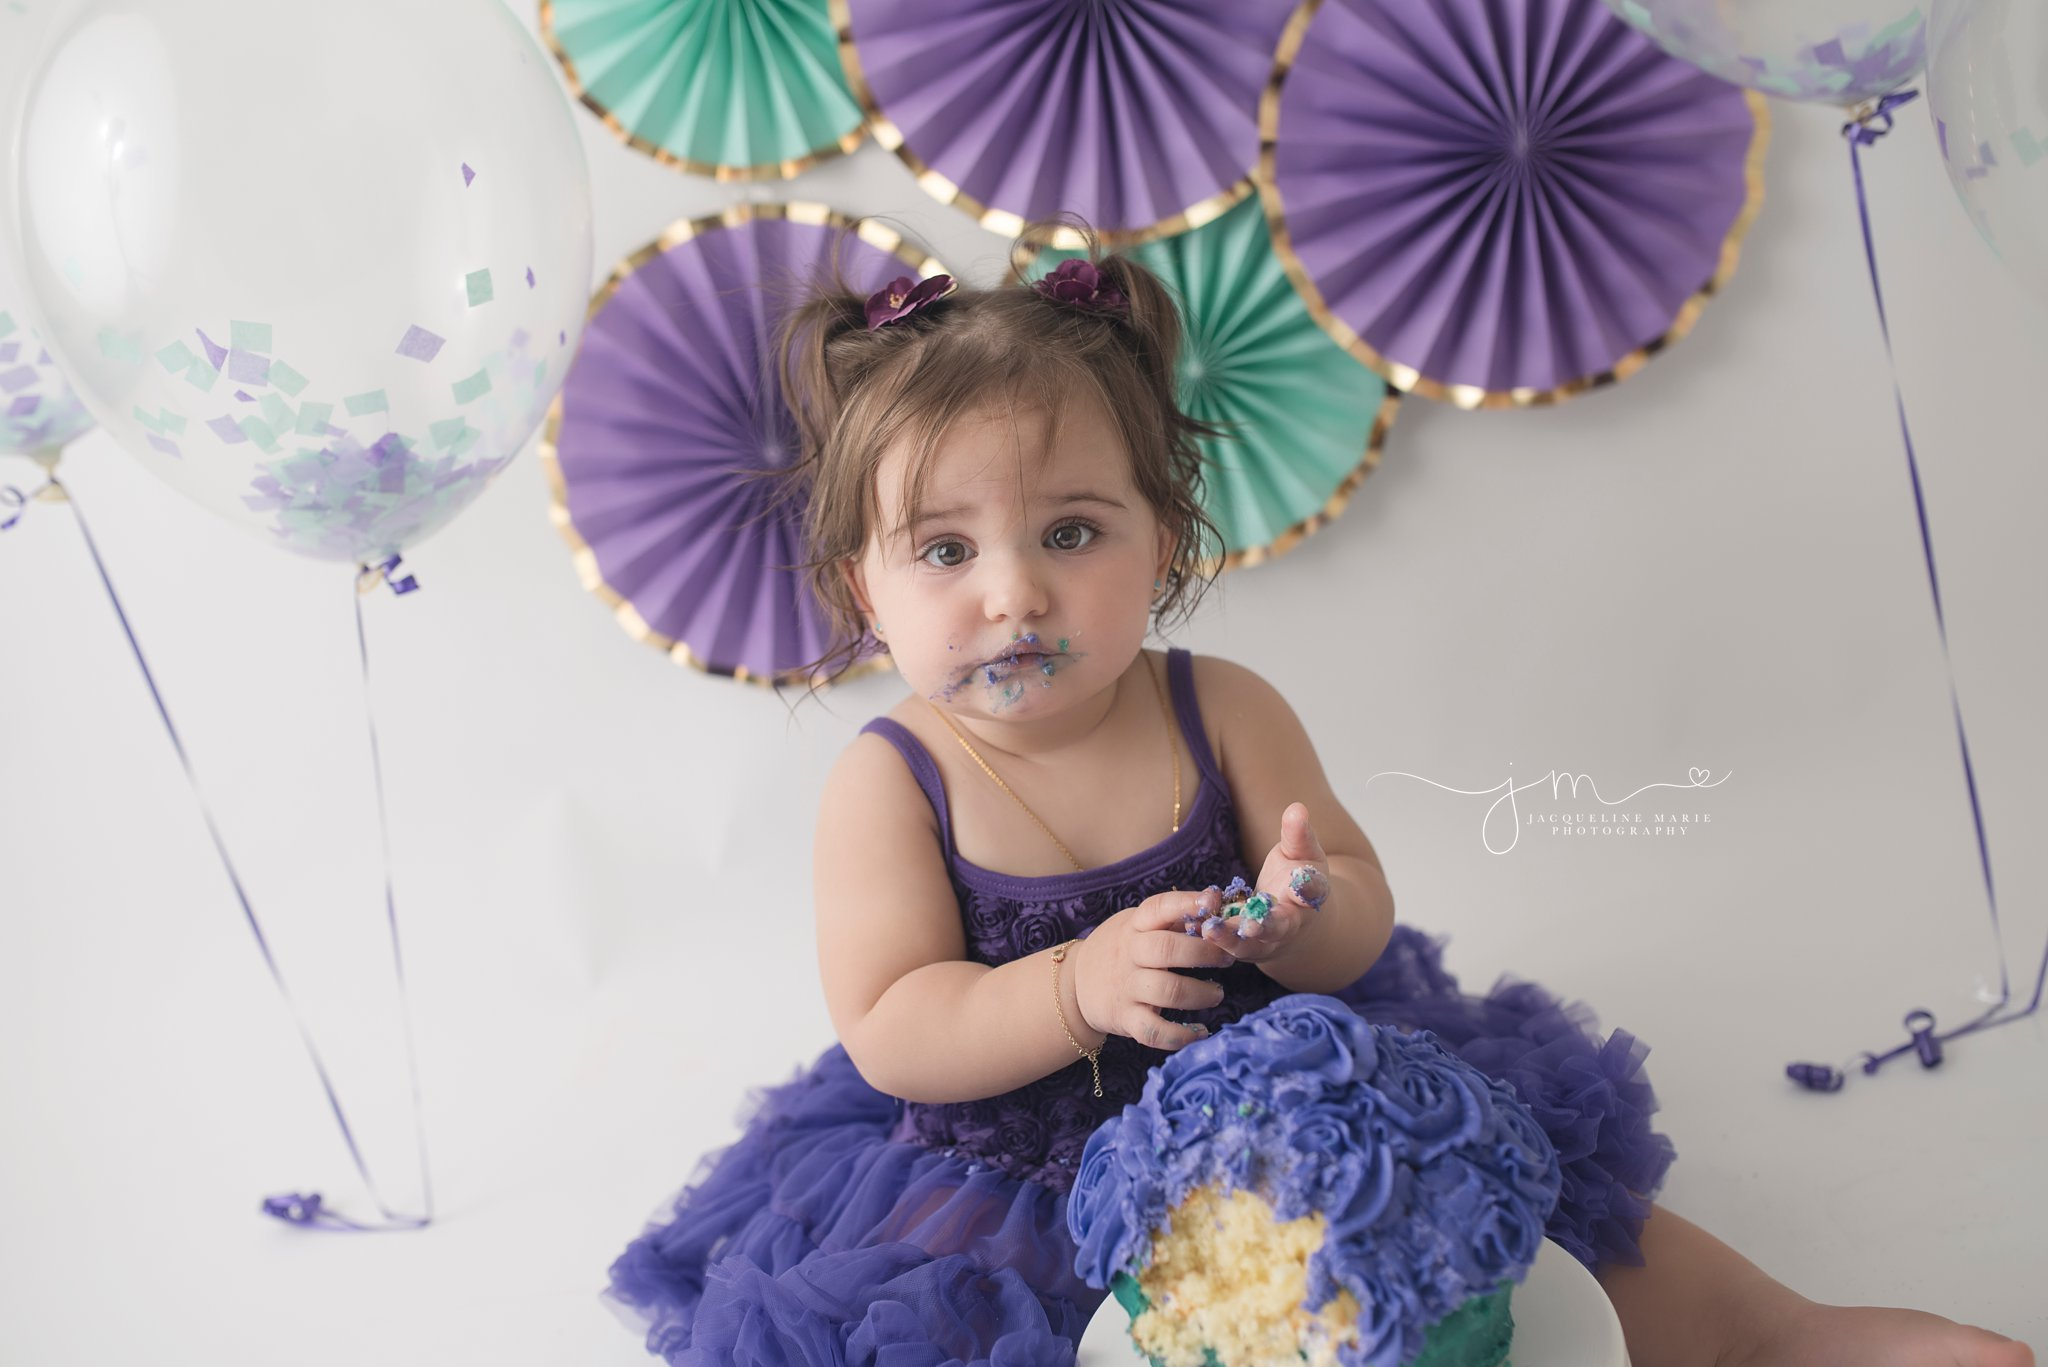 columbus ohio first birthday photographer offers cake smash pictures for portrait sessions